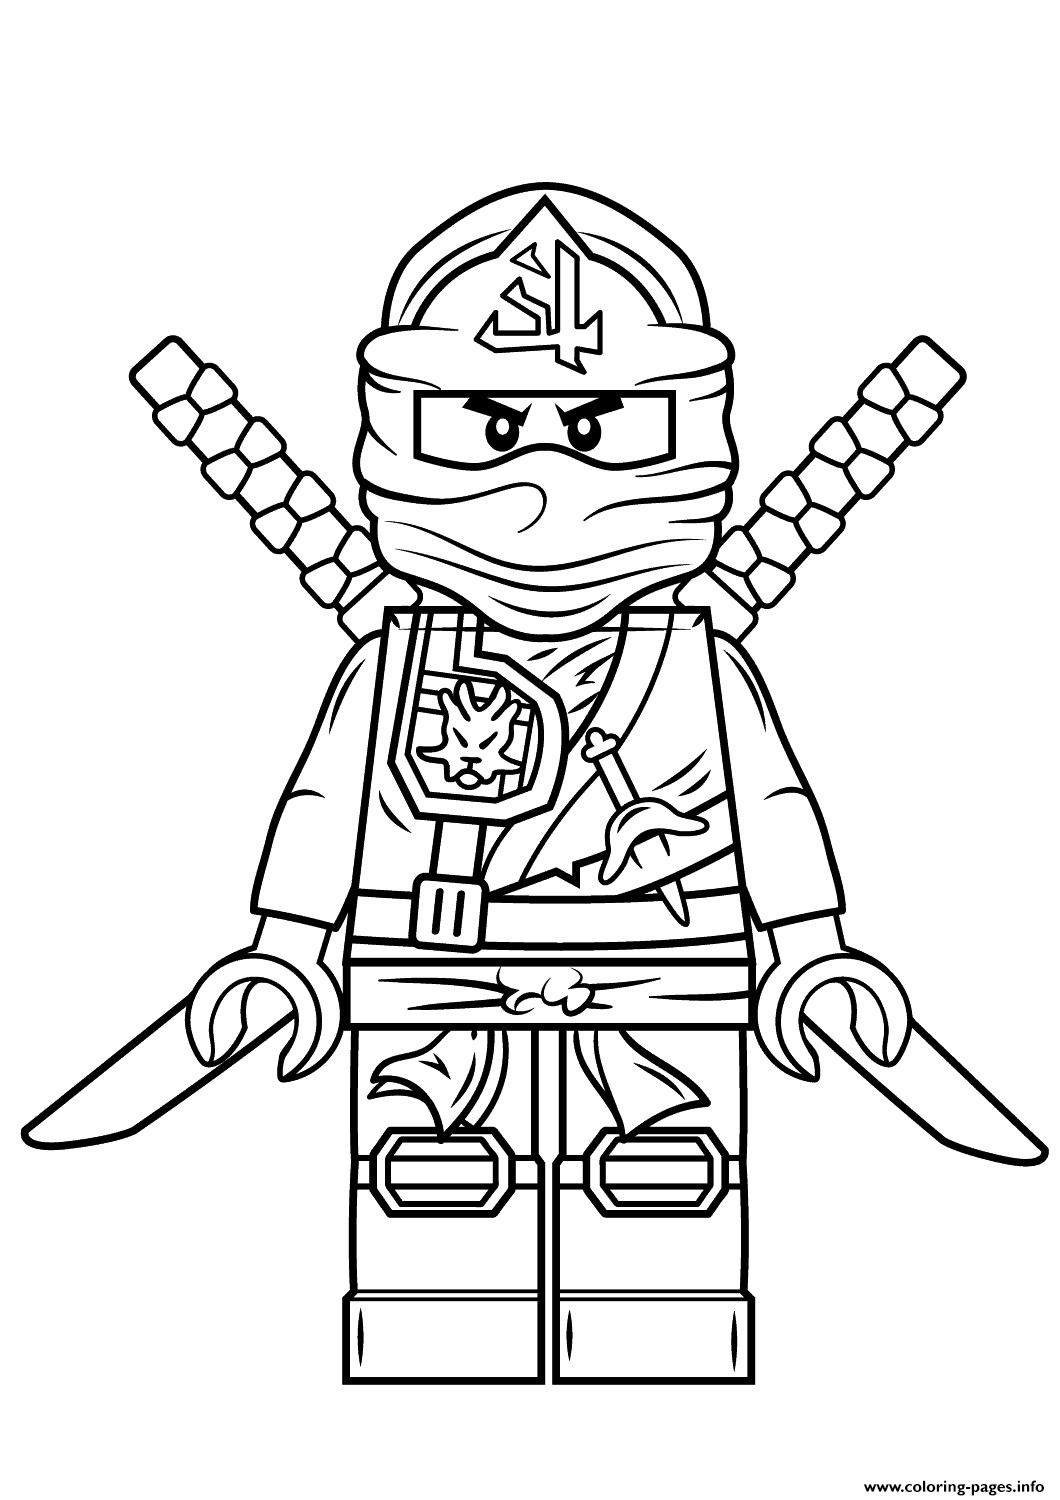 1060x1500 Ninjago Green Ninja Beauteous Lloyd Garmadon